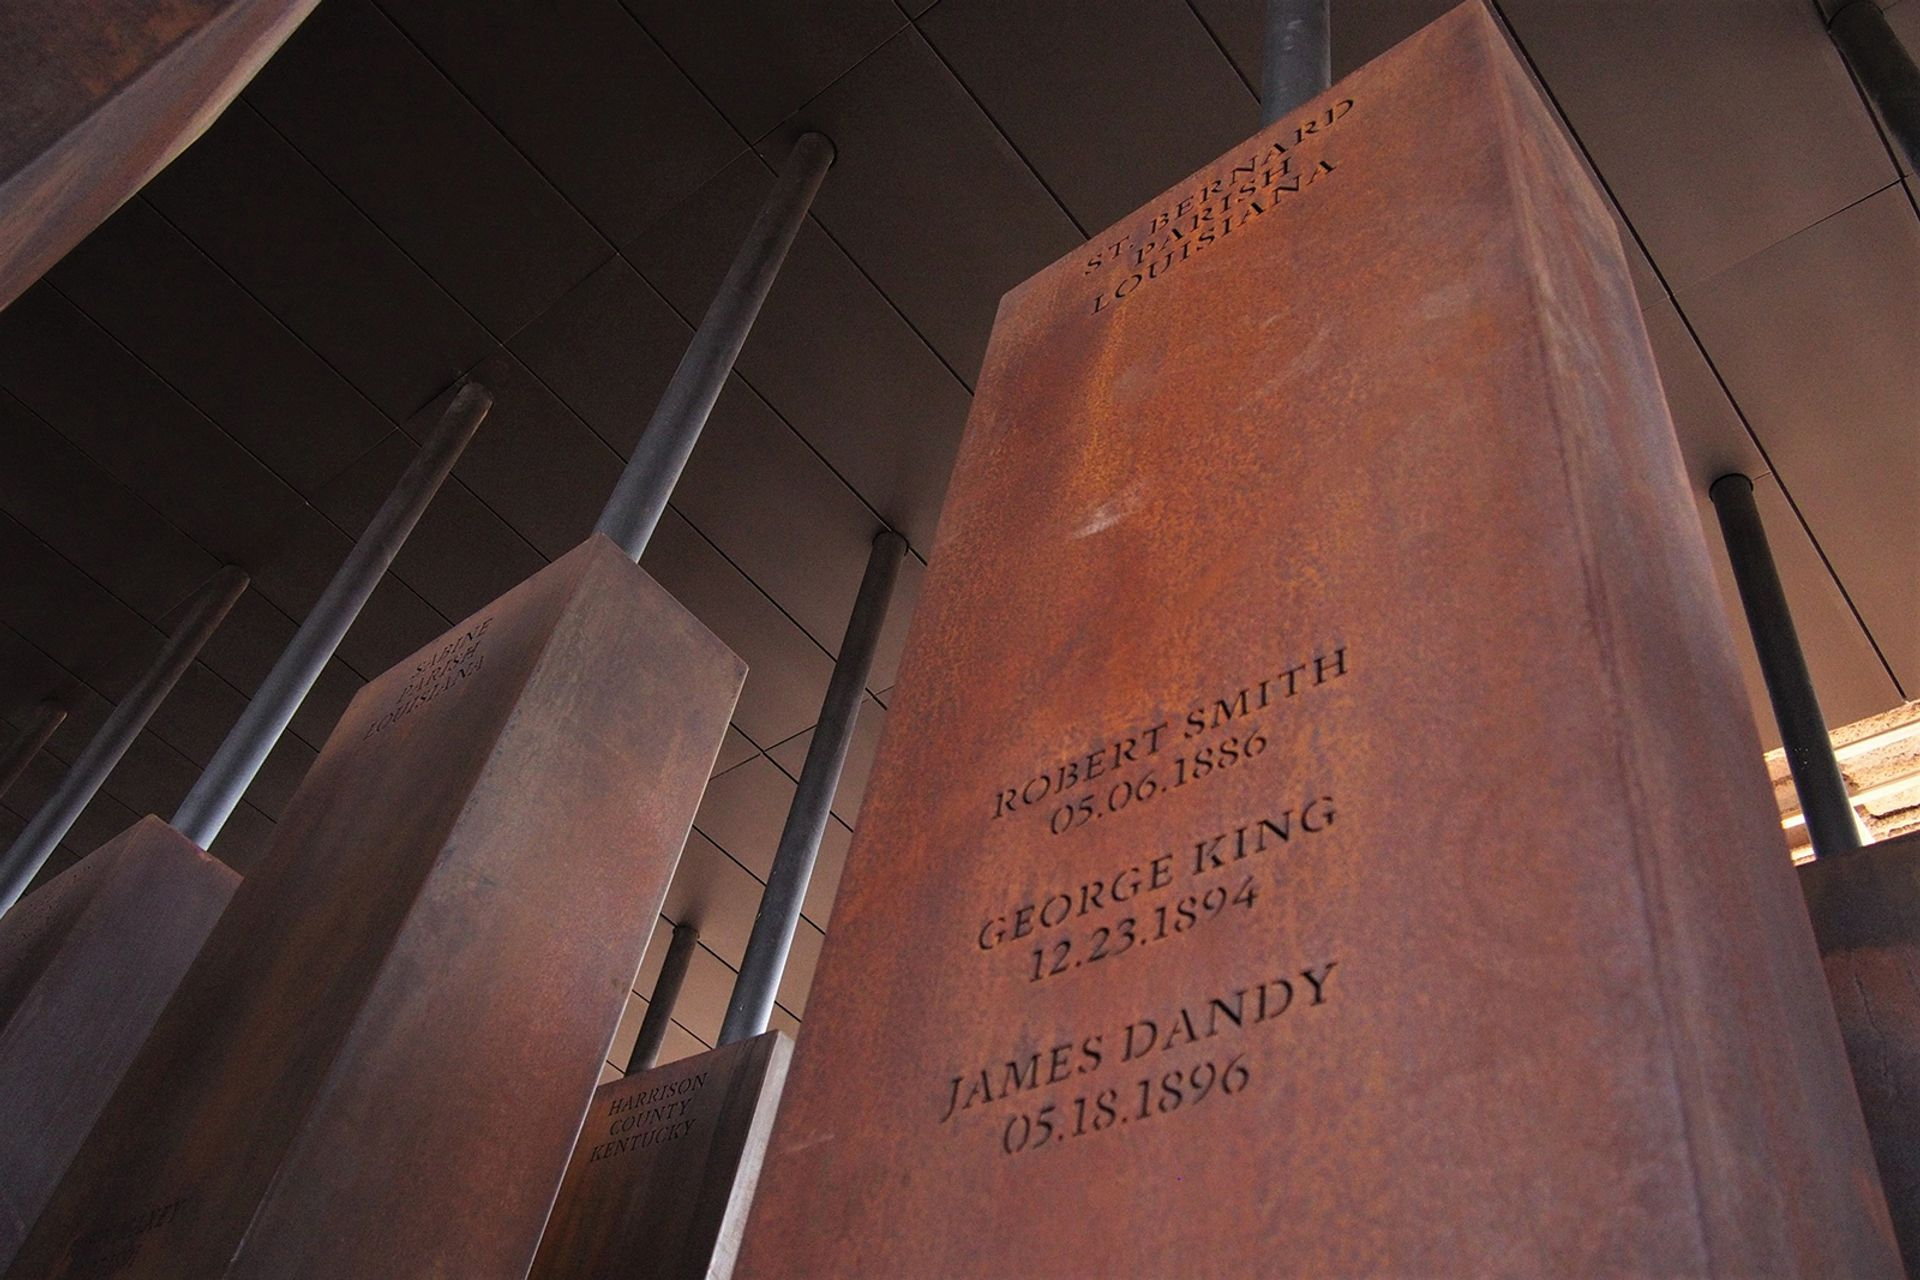 One of the monuments to lynching victims in the National Memorial for Peace and Justice Equal Justice Initiative